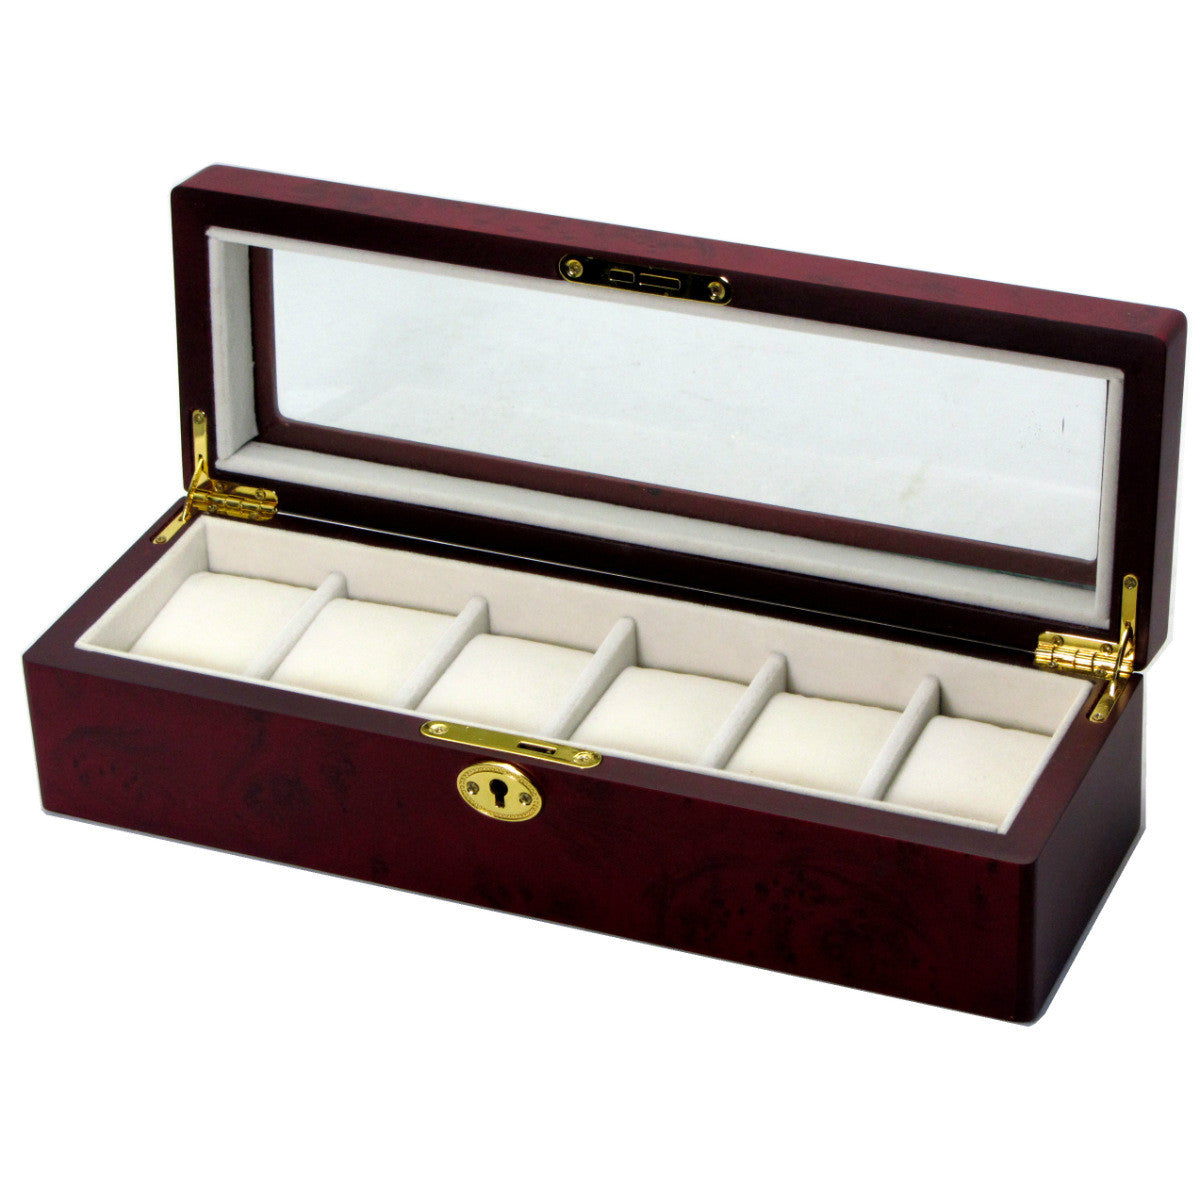 Pearl Time 6 Watch Box Glass Lid Cherrywood 34cm Open PW003B